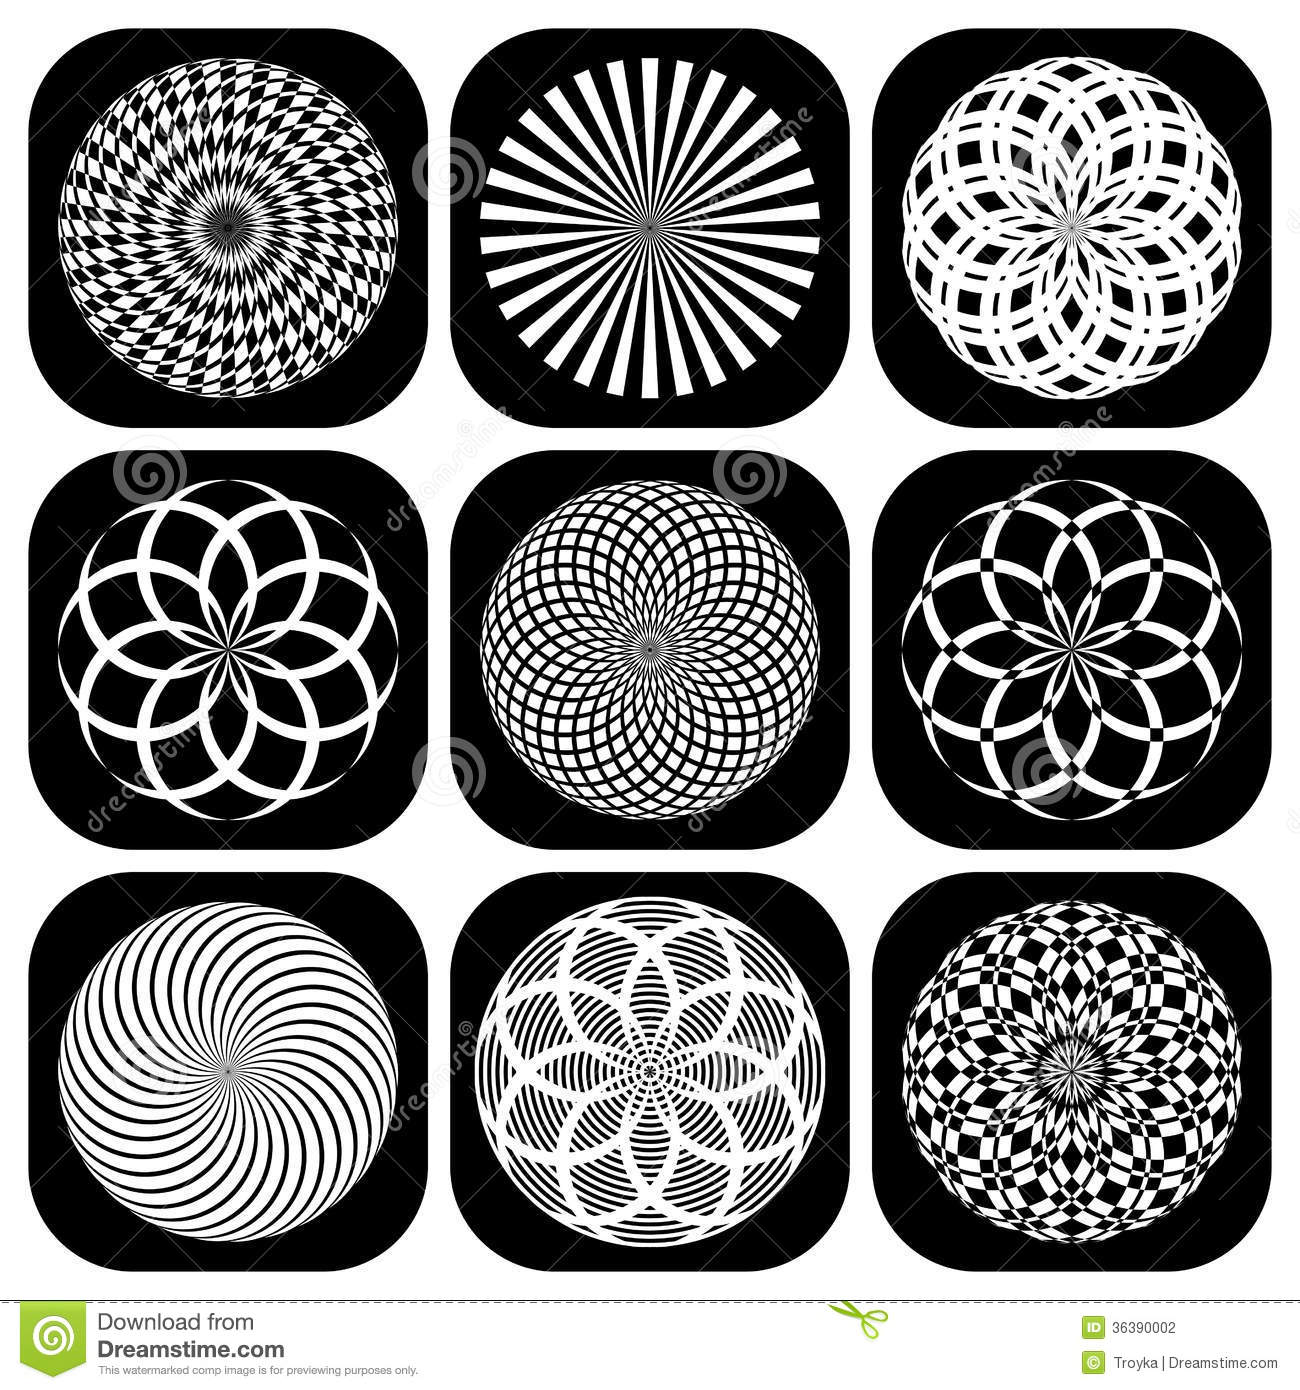 Worksheets Shape Design Patterns patterns in circle shape design elements set stock photography set